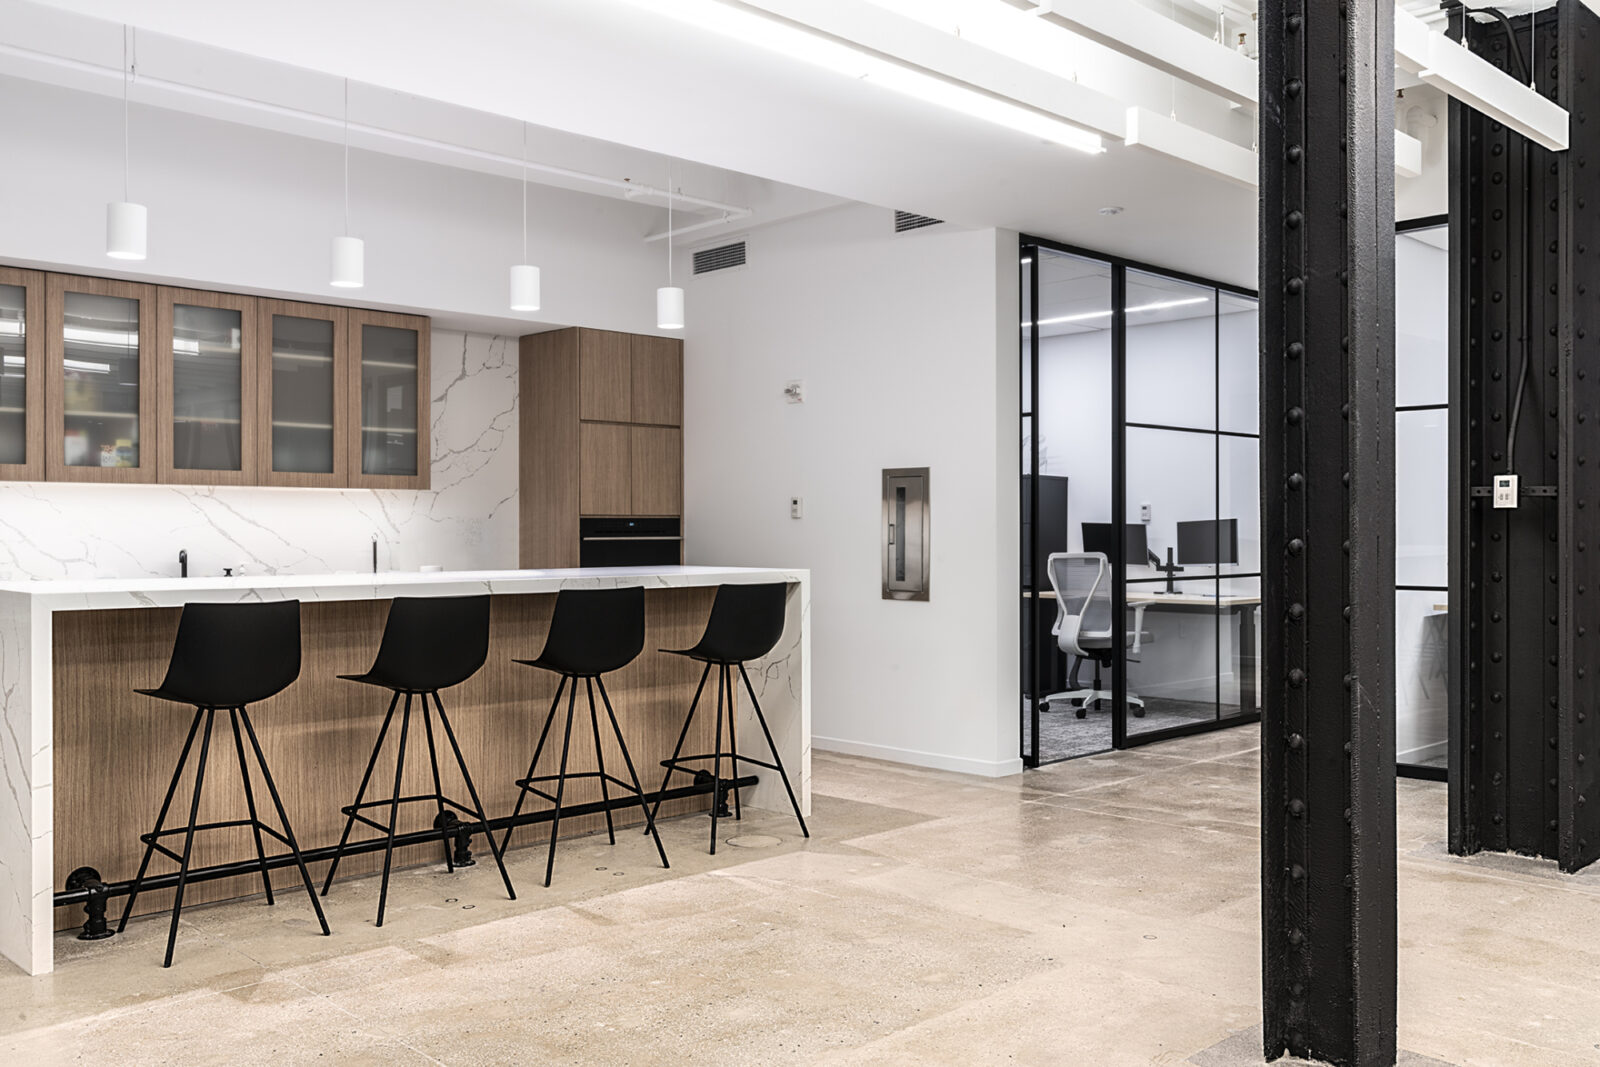 Cafe and Touchdown meeting area for Real Estate Client at Creative Office Pavilion New York City NYC